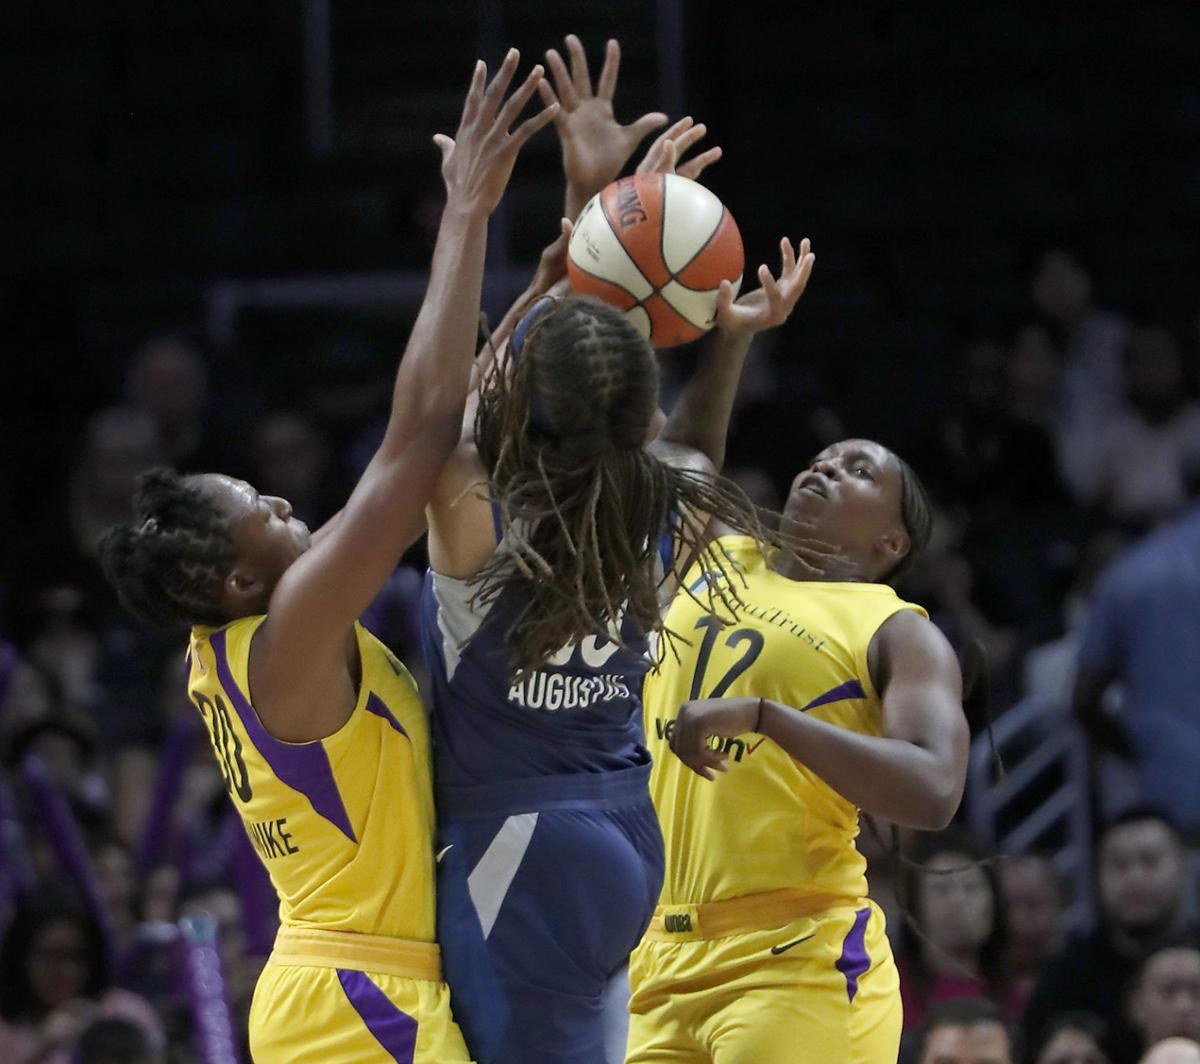 Women's sports on the rise, despite naysayers